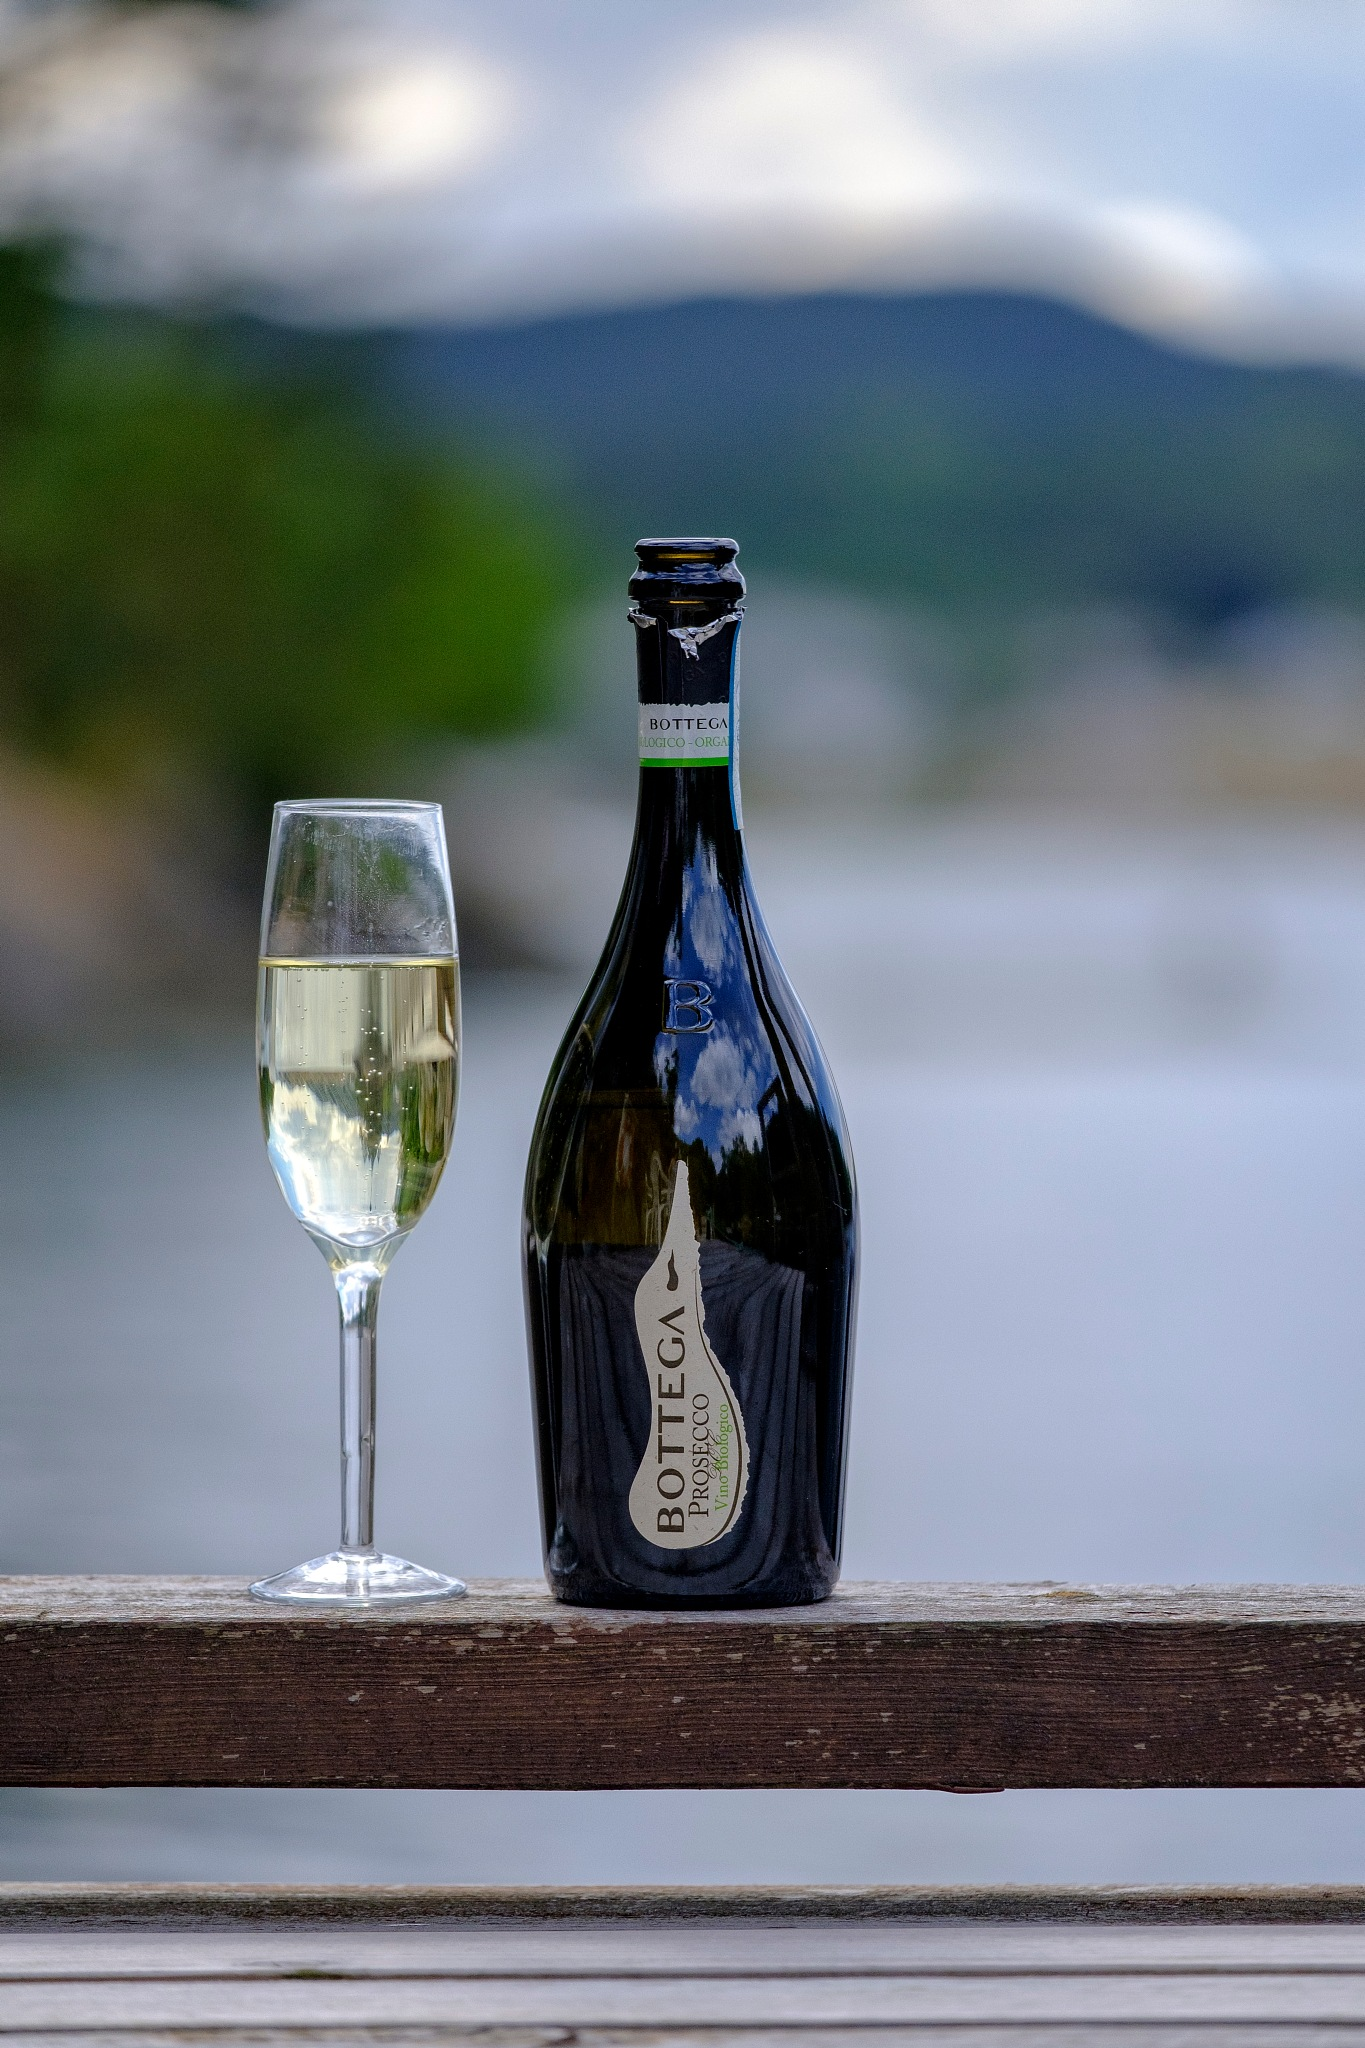 Prosecco anyone? by Andreas Hognerud